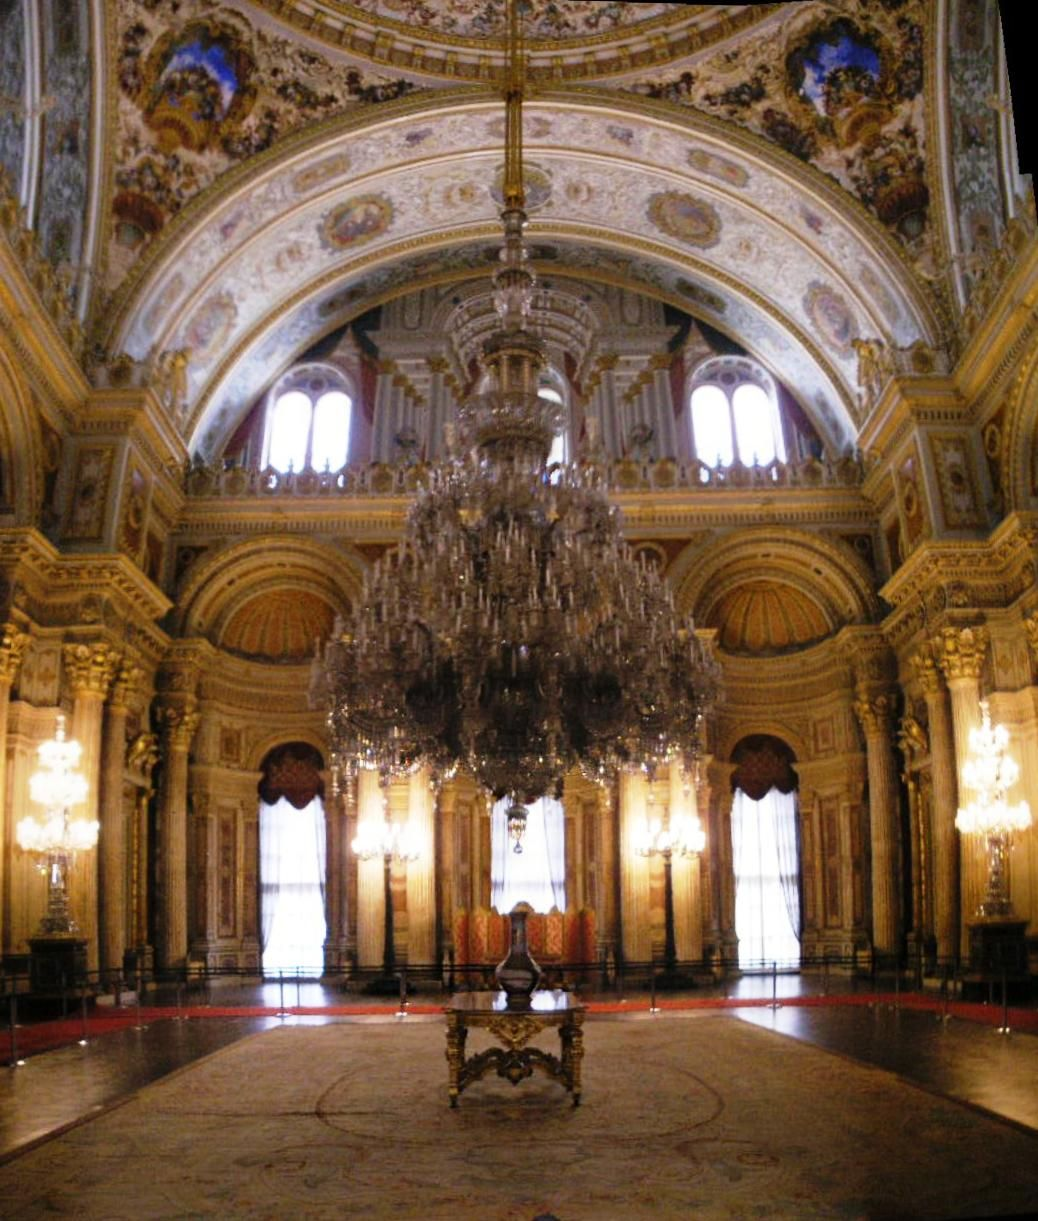 Ceremonial hall muayede salonu in dolmabahe palace istanbul with dolmabahce palace istanbul the worlds largest bohemian crystal chandelier arubaitofo Image collections